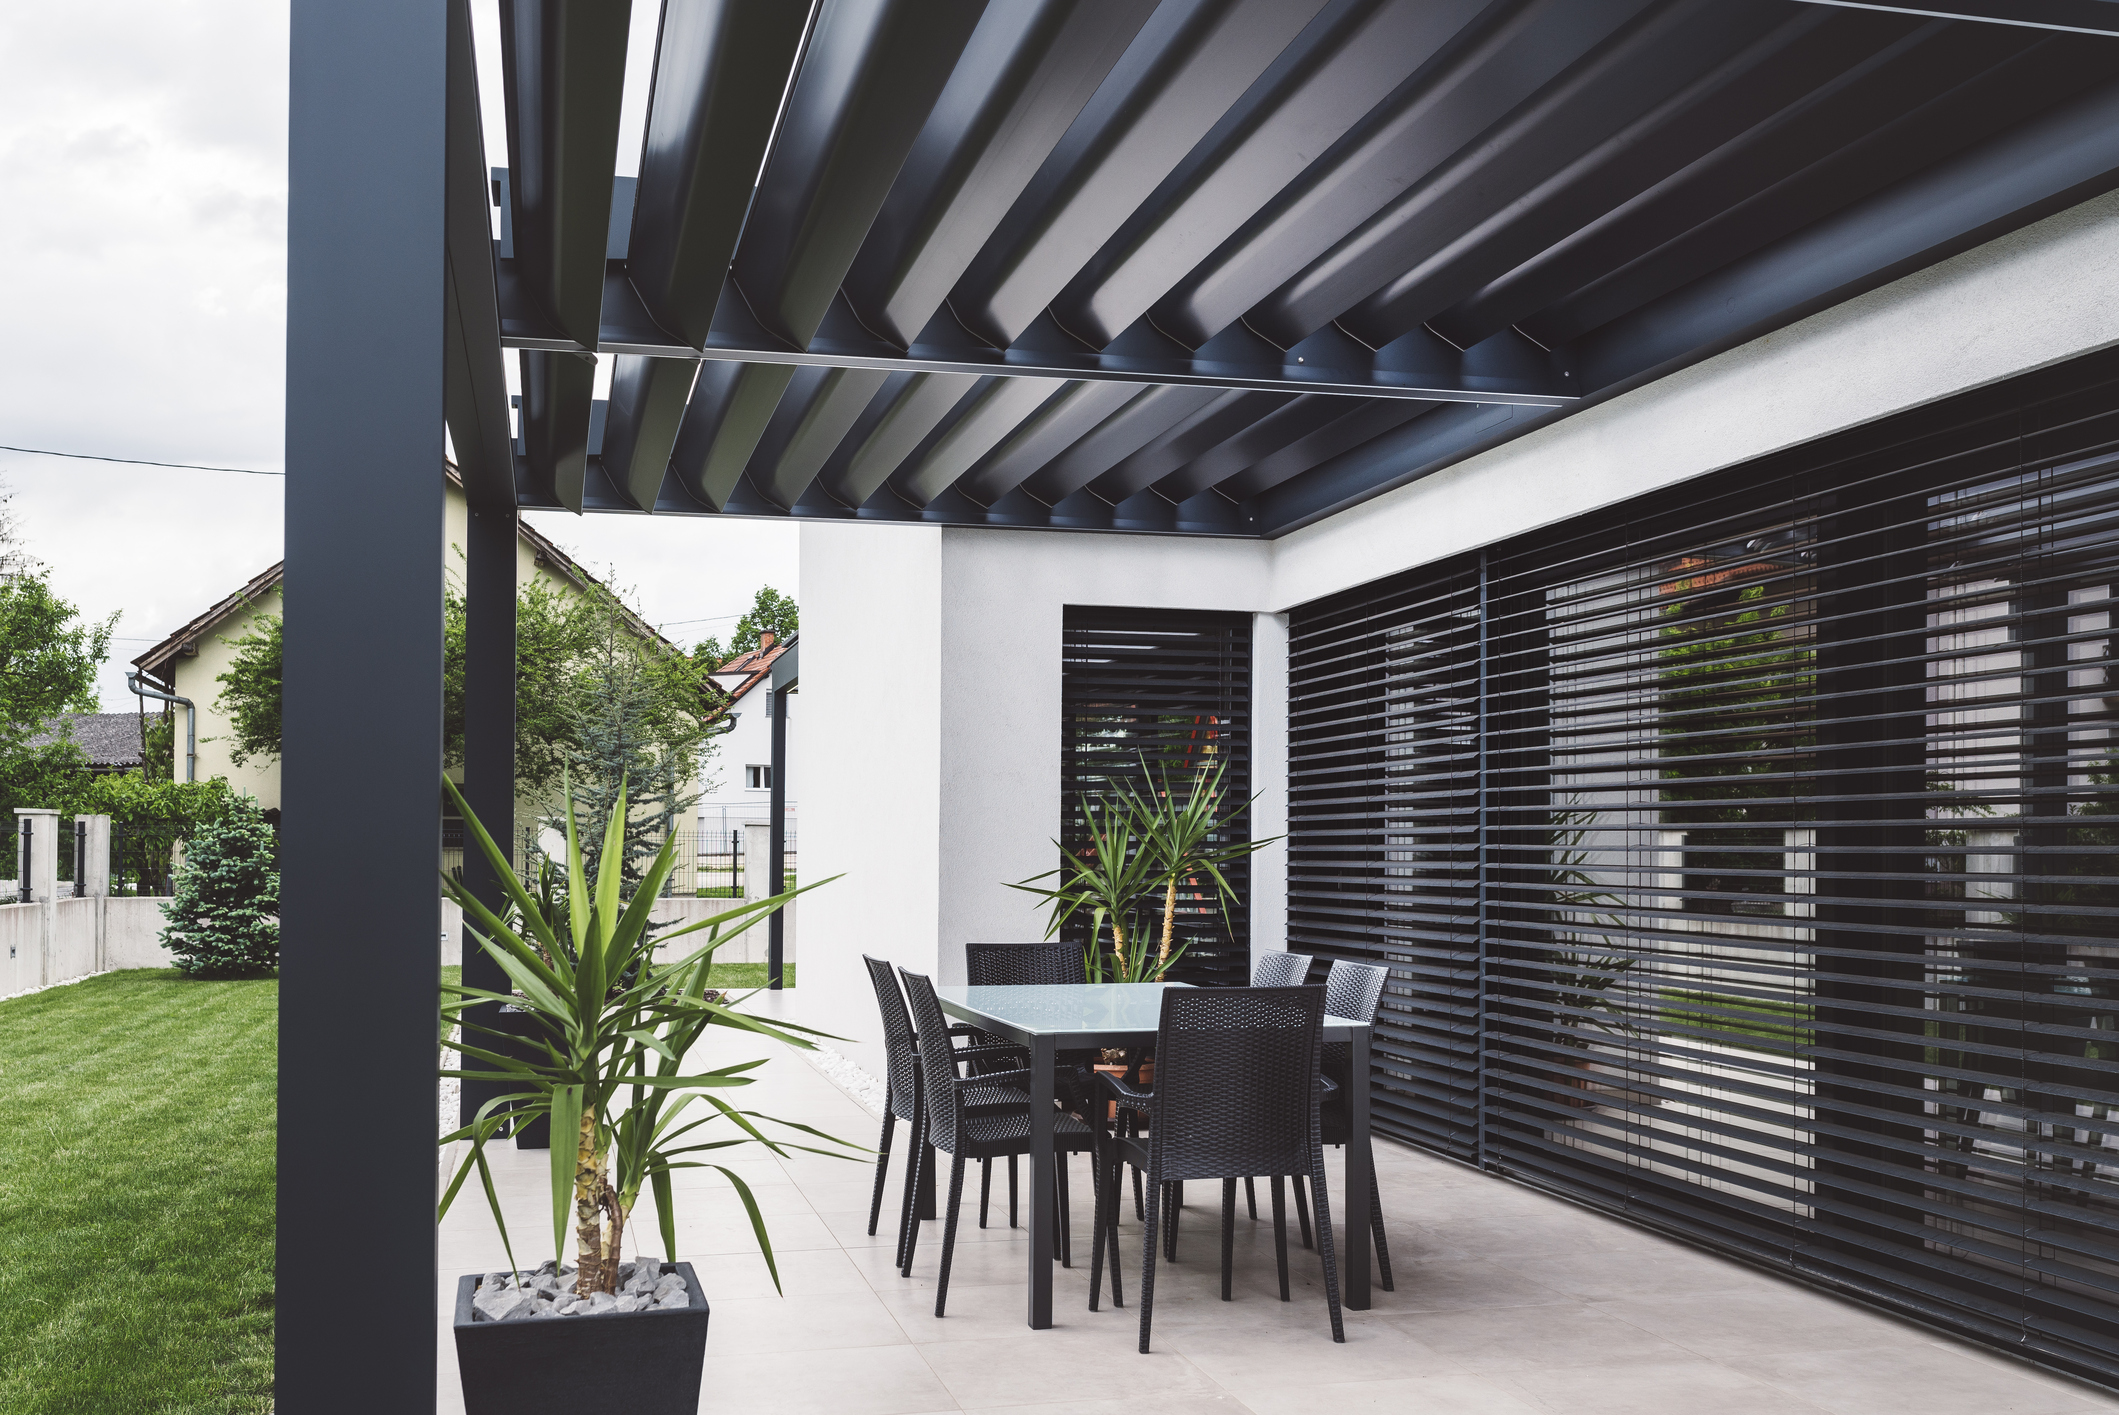 Awning Amp Canopy Glossary The Different Types Explained